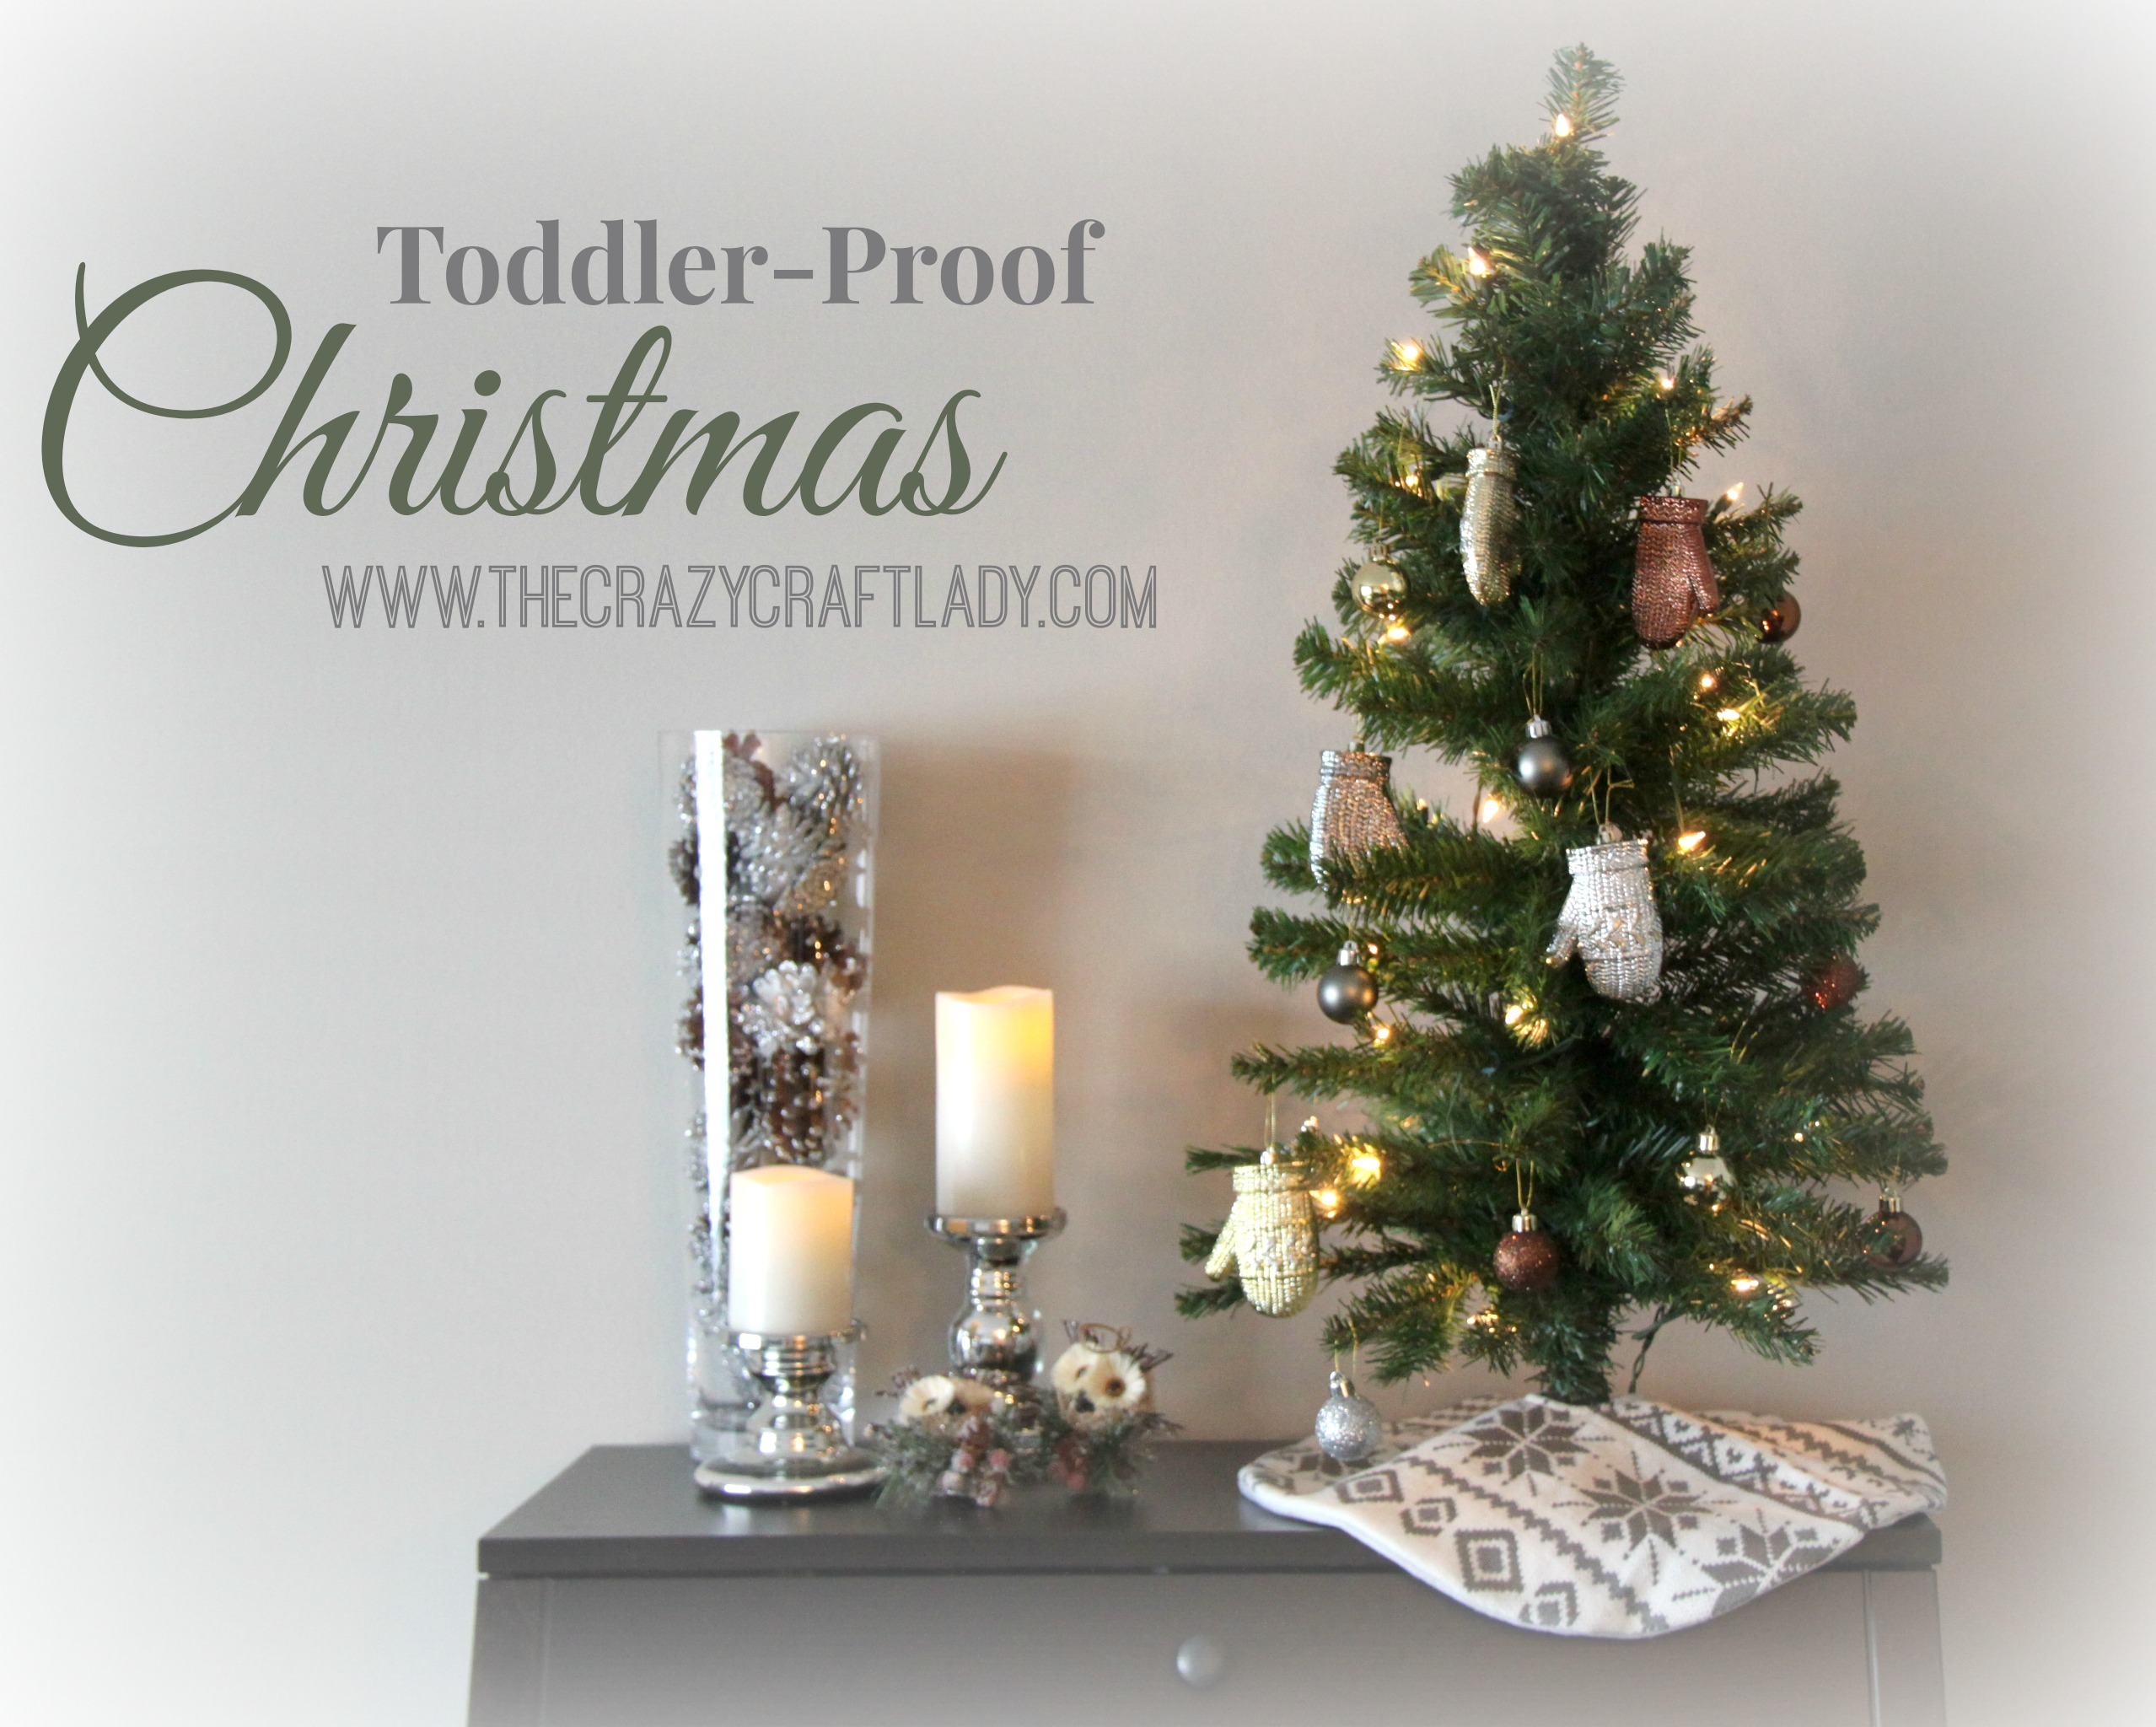 Toddler Proof Christmas Tree.Toddler Proof Christmas The Crazy Craft Lady